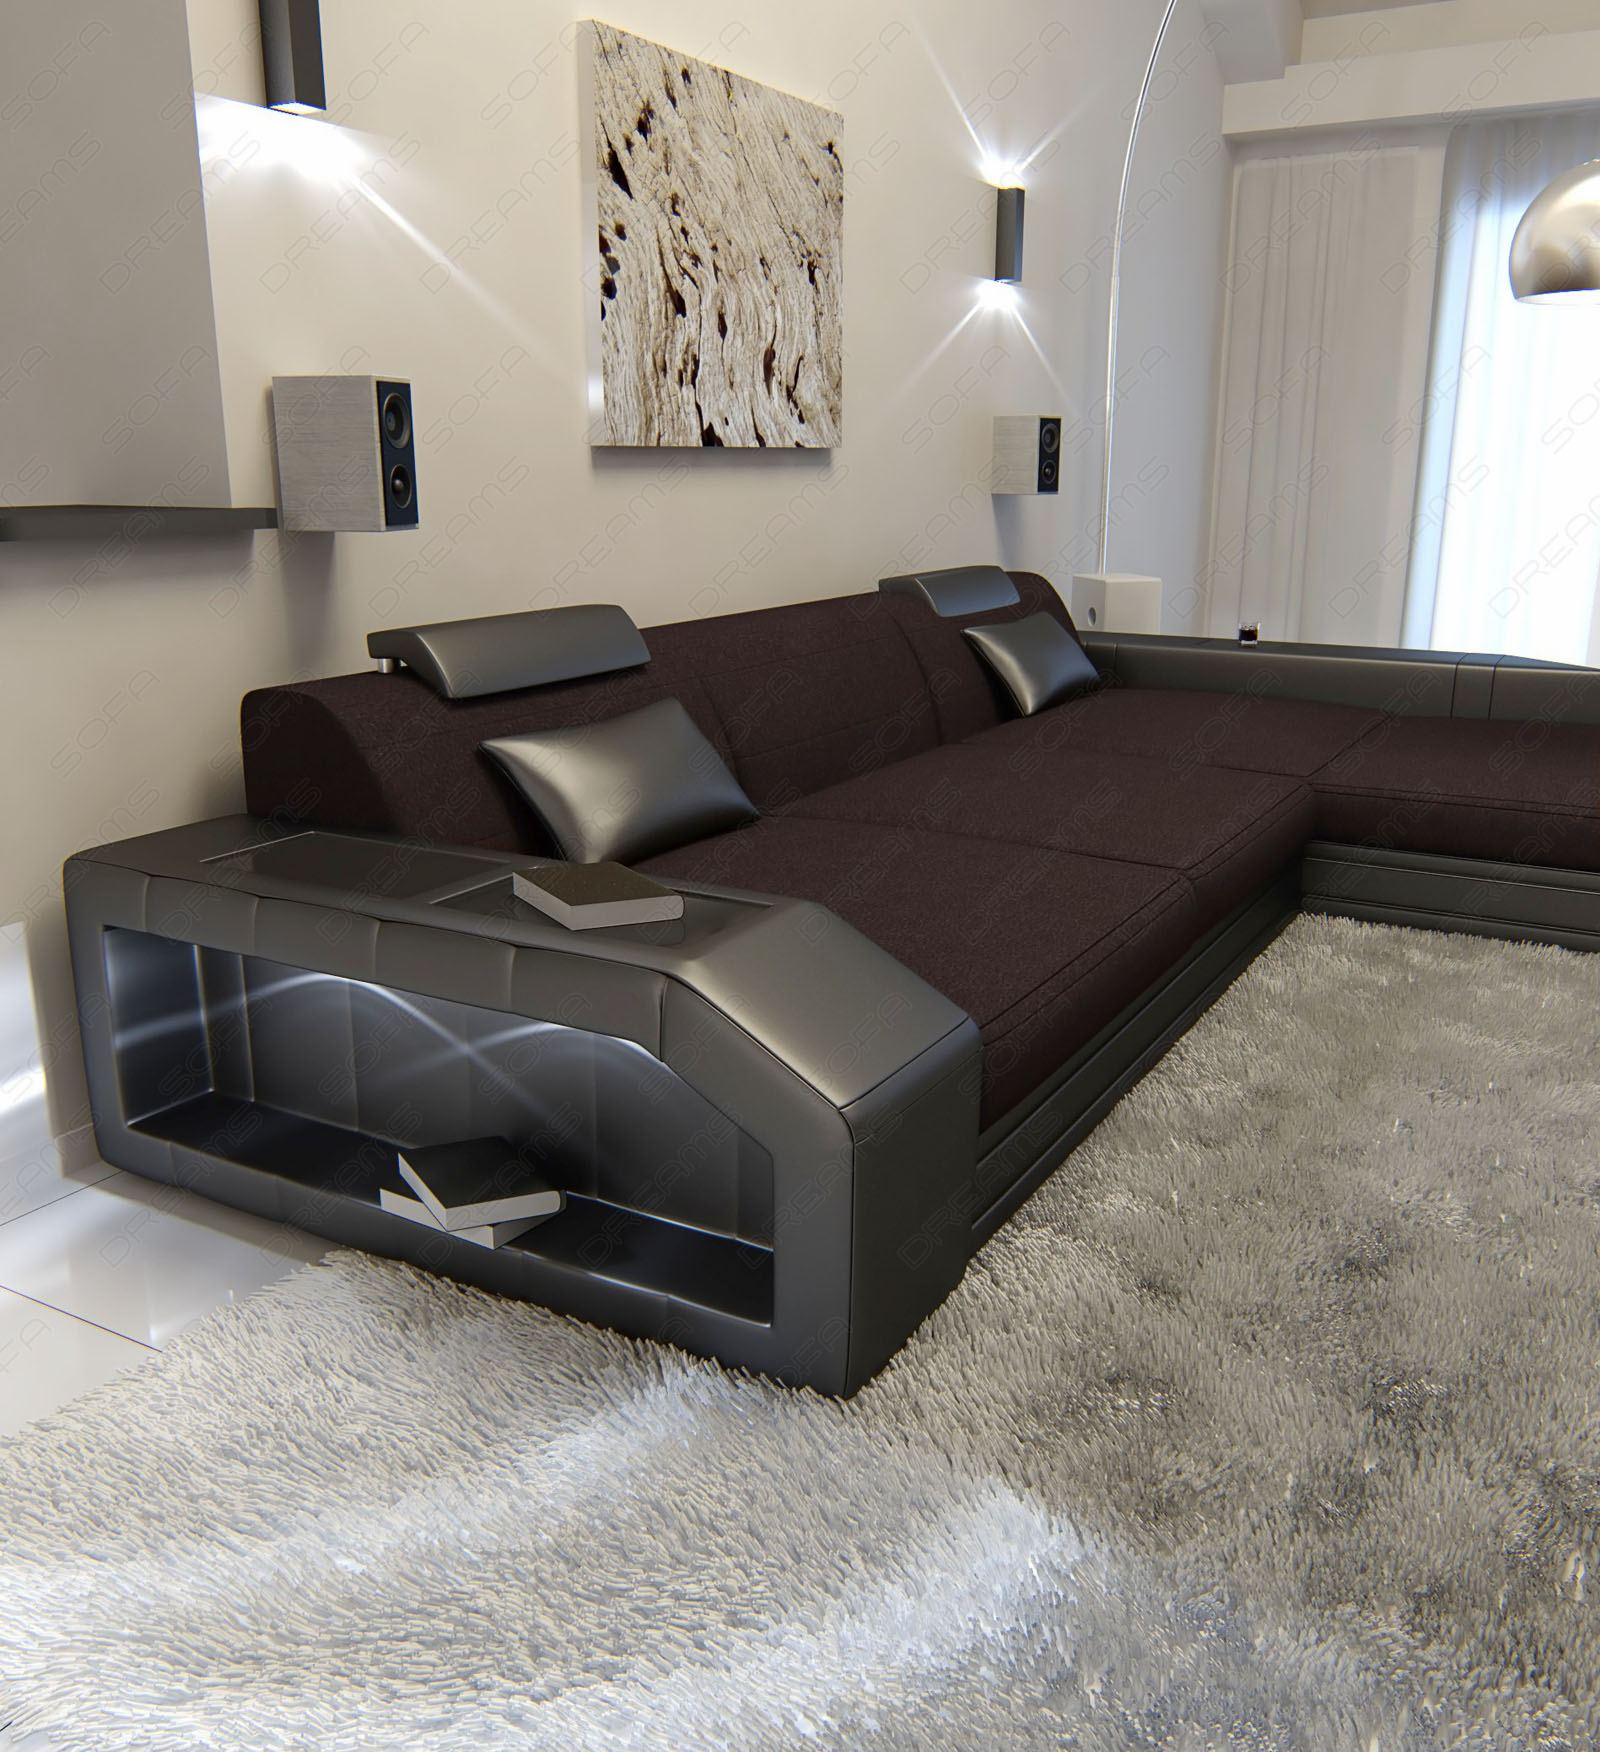 Upholstery fabric sofa prato l shaped with led lighting for Sofa xxl l form